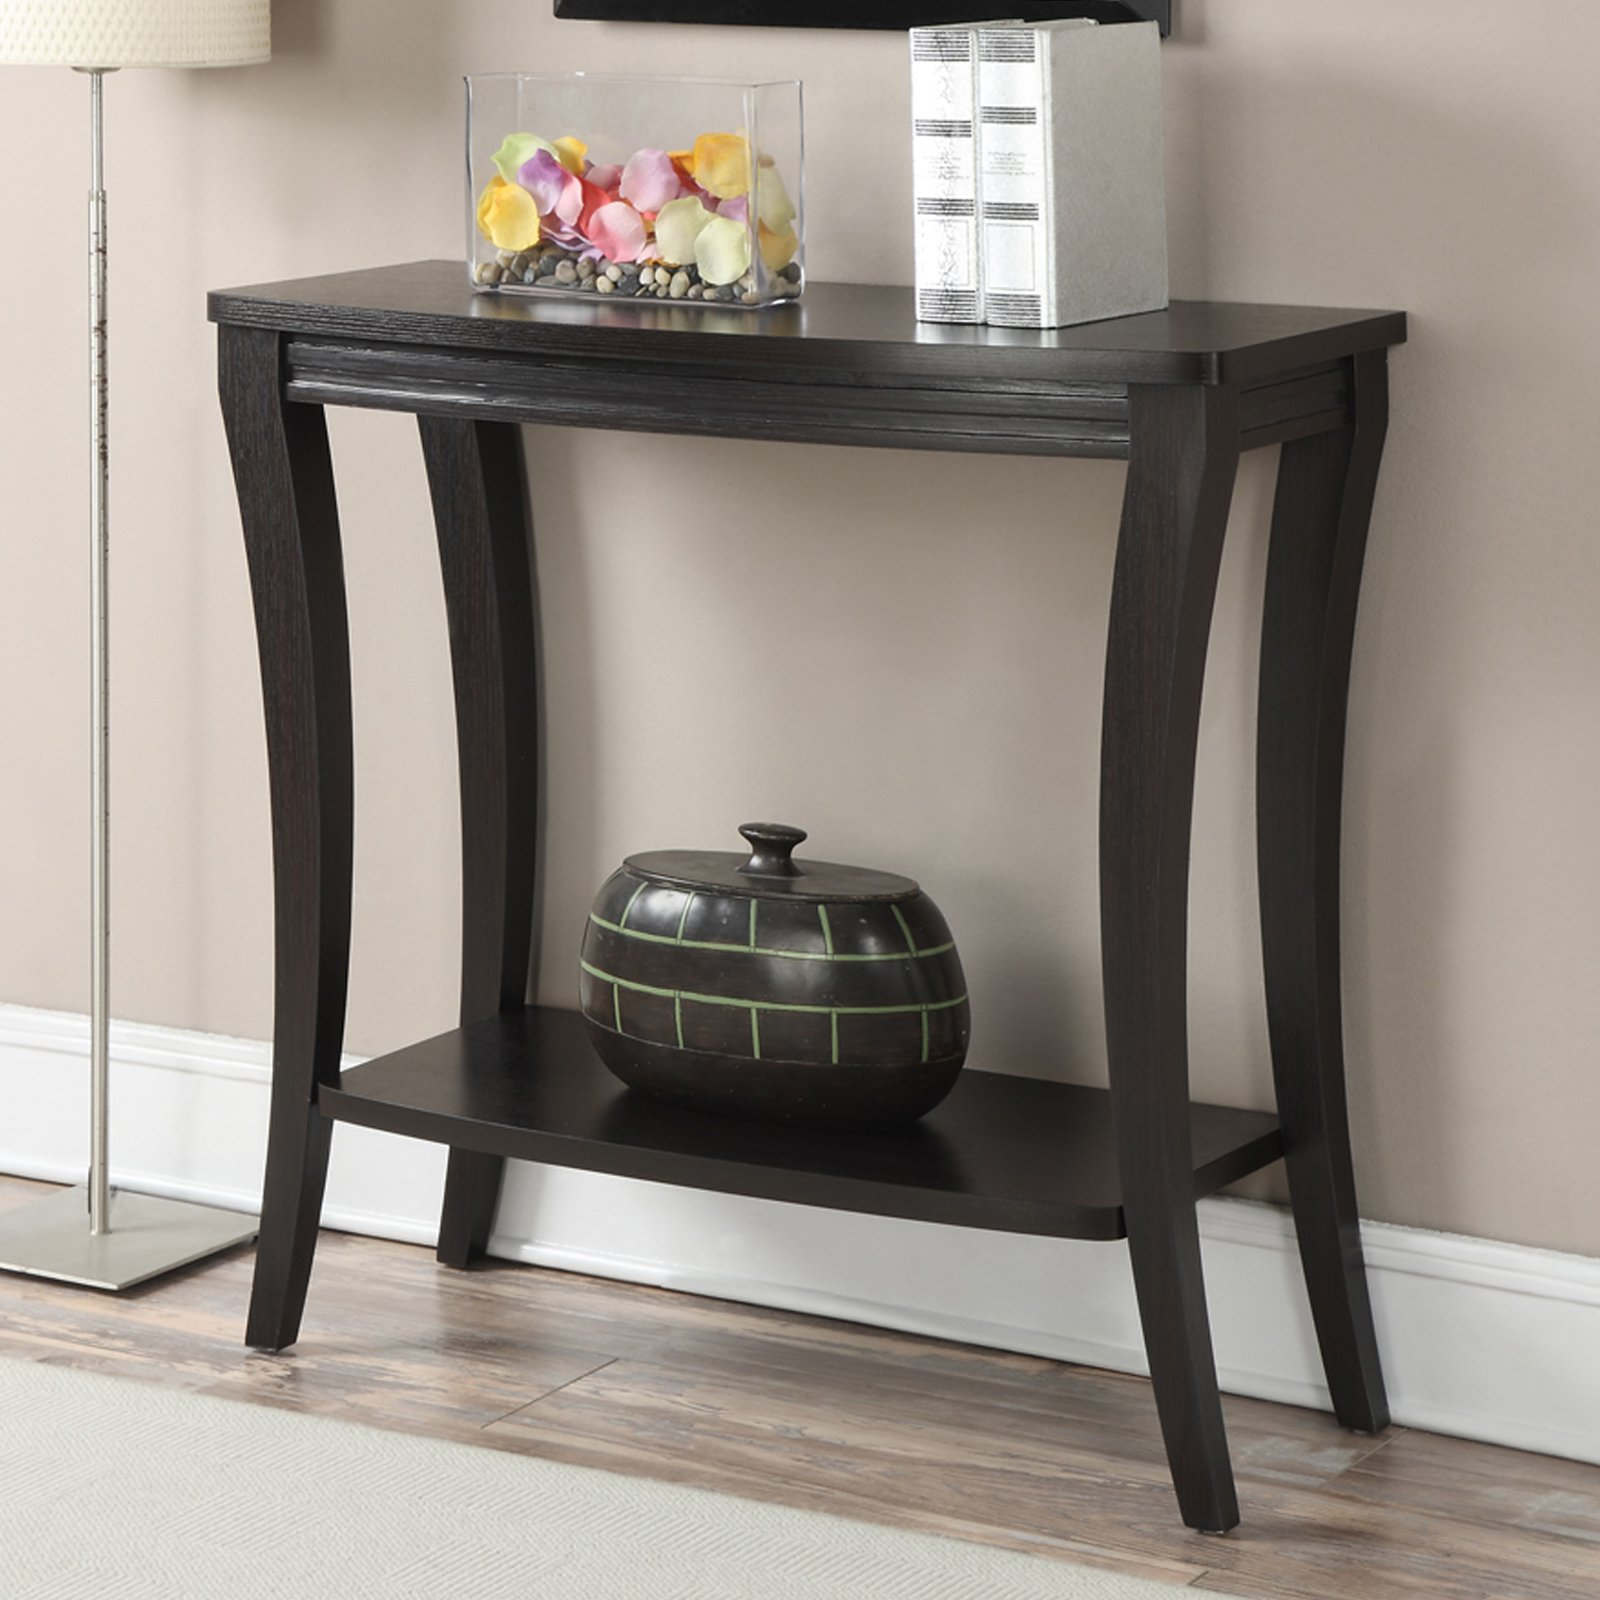 Convenience Concepts Newport Console Table with Shelf, Espresso by Overstock